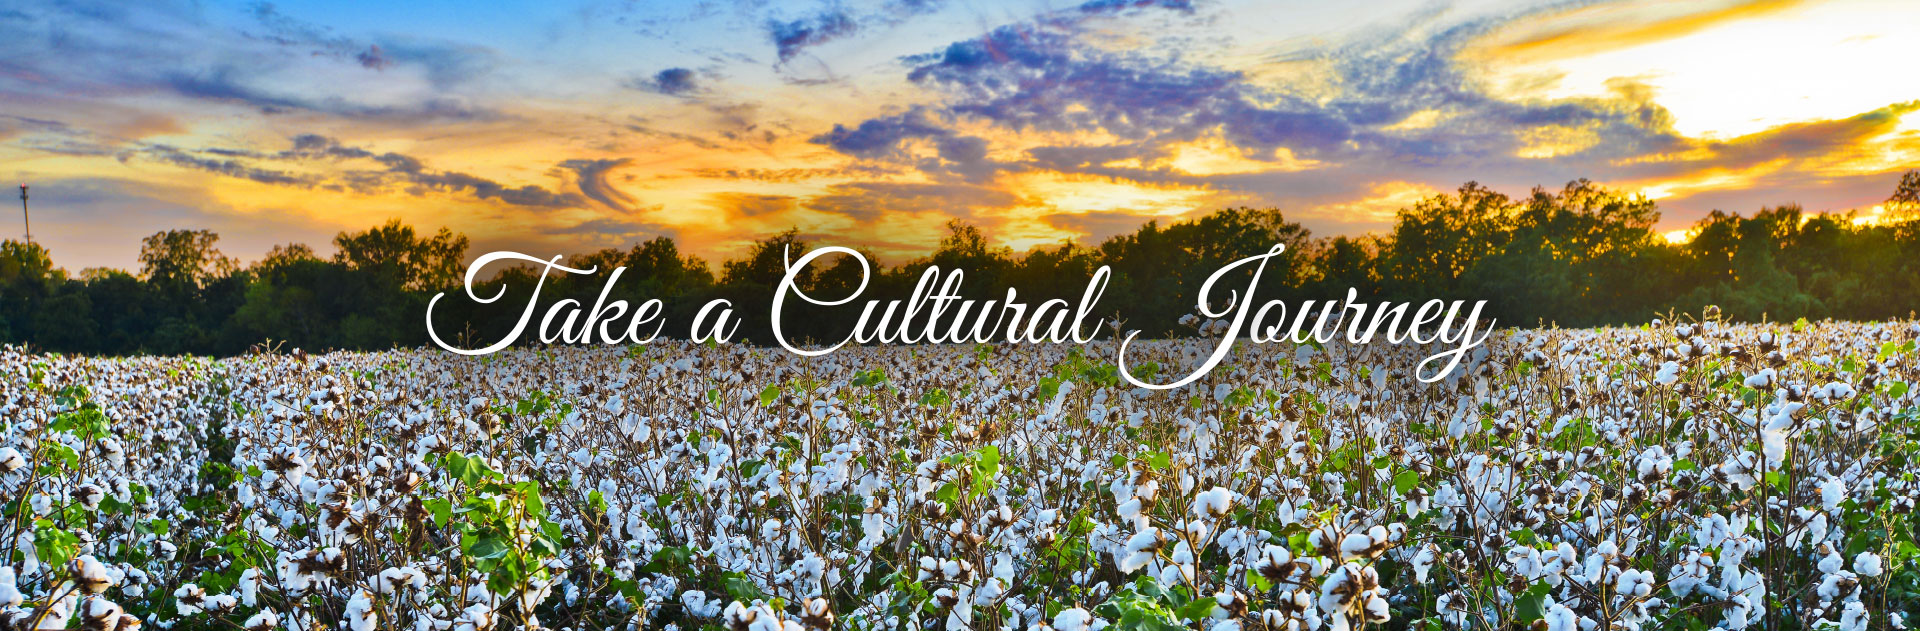 A Cultural Journey